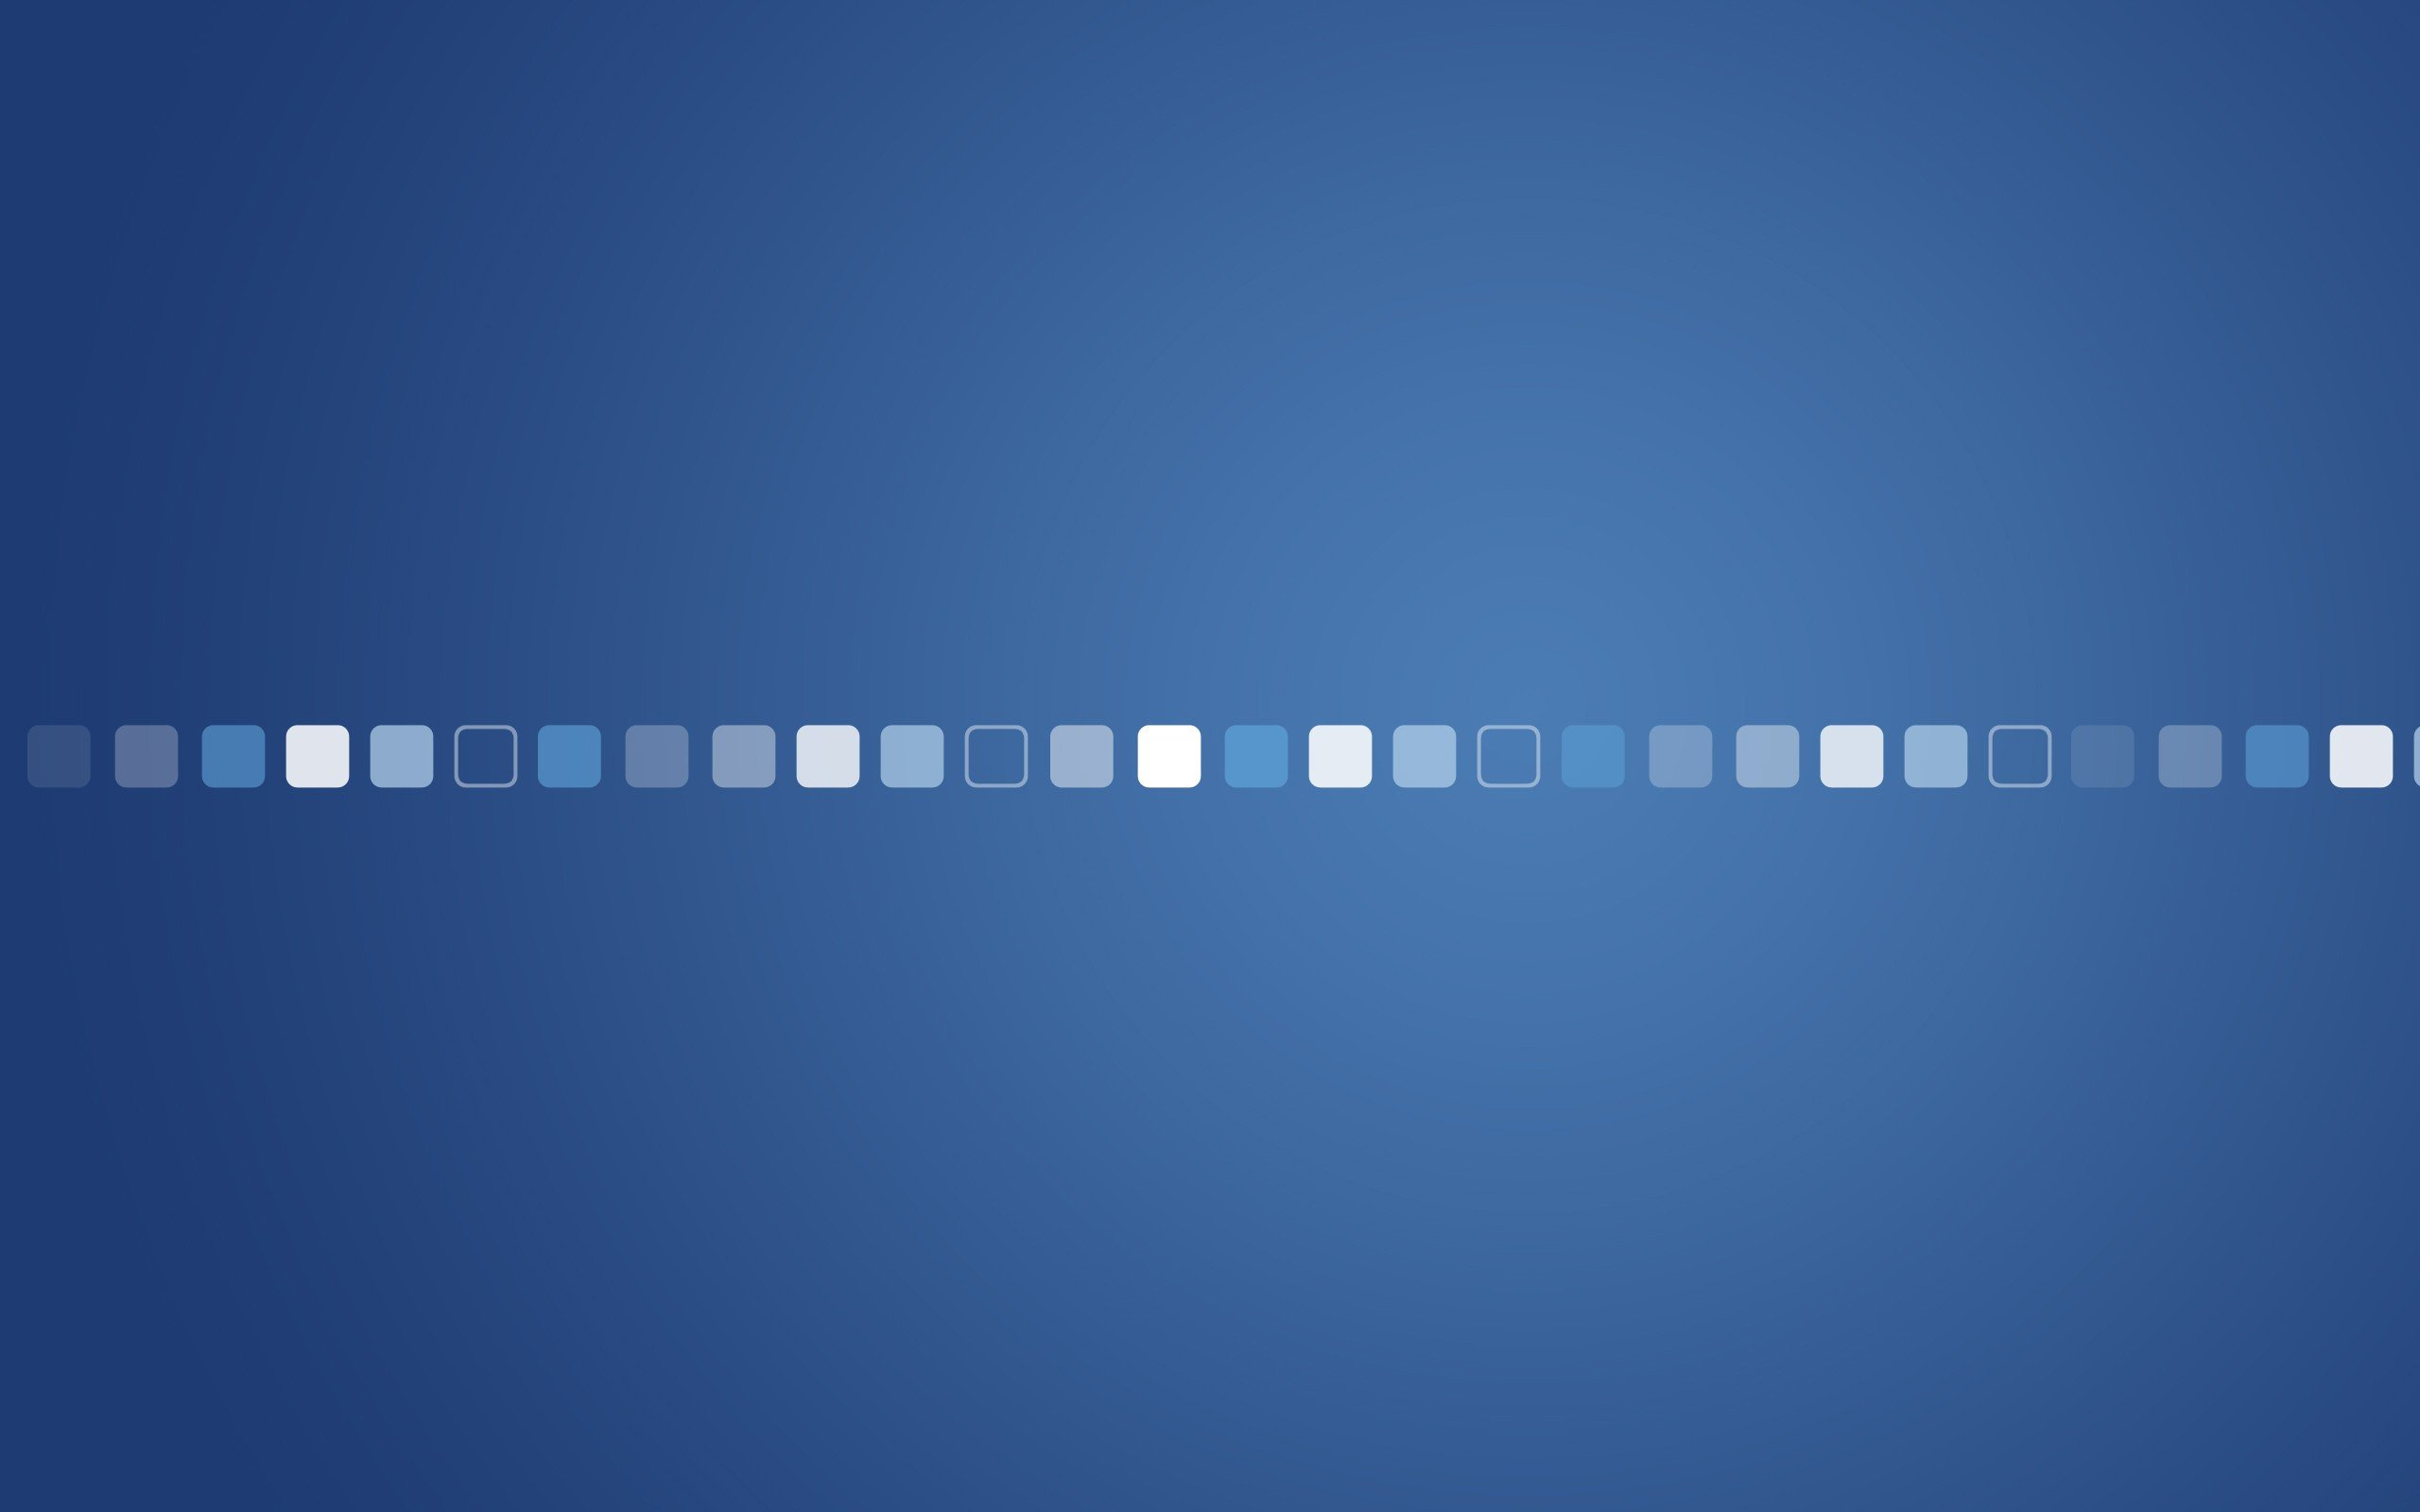 Free download Minimalistic background ID:340221 hd 2560x1600 for PC